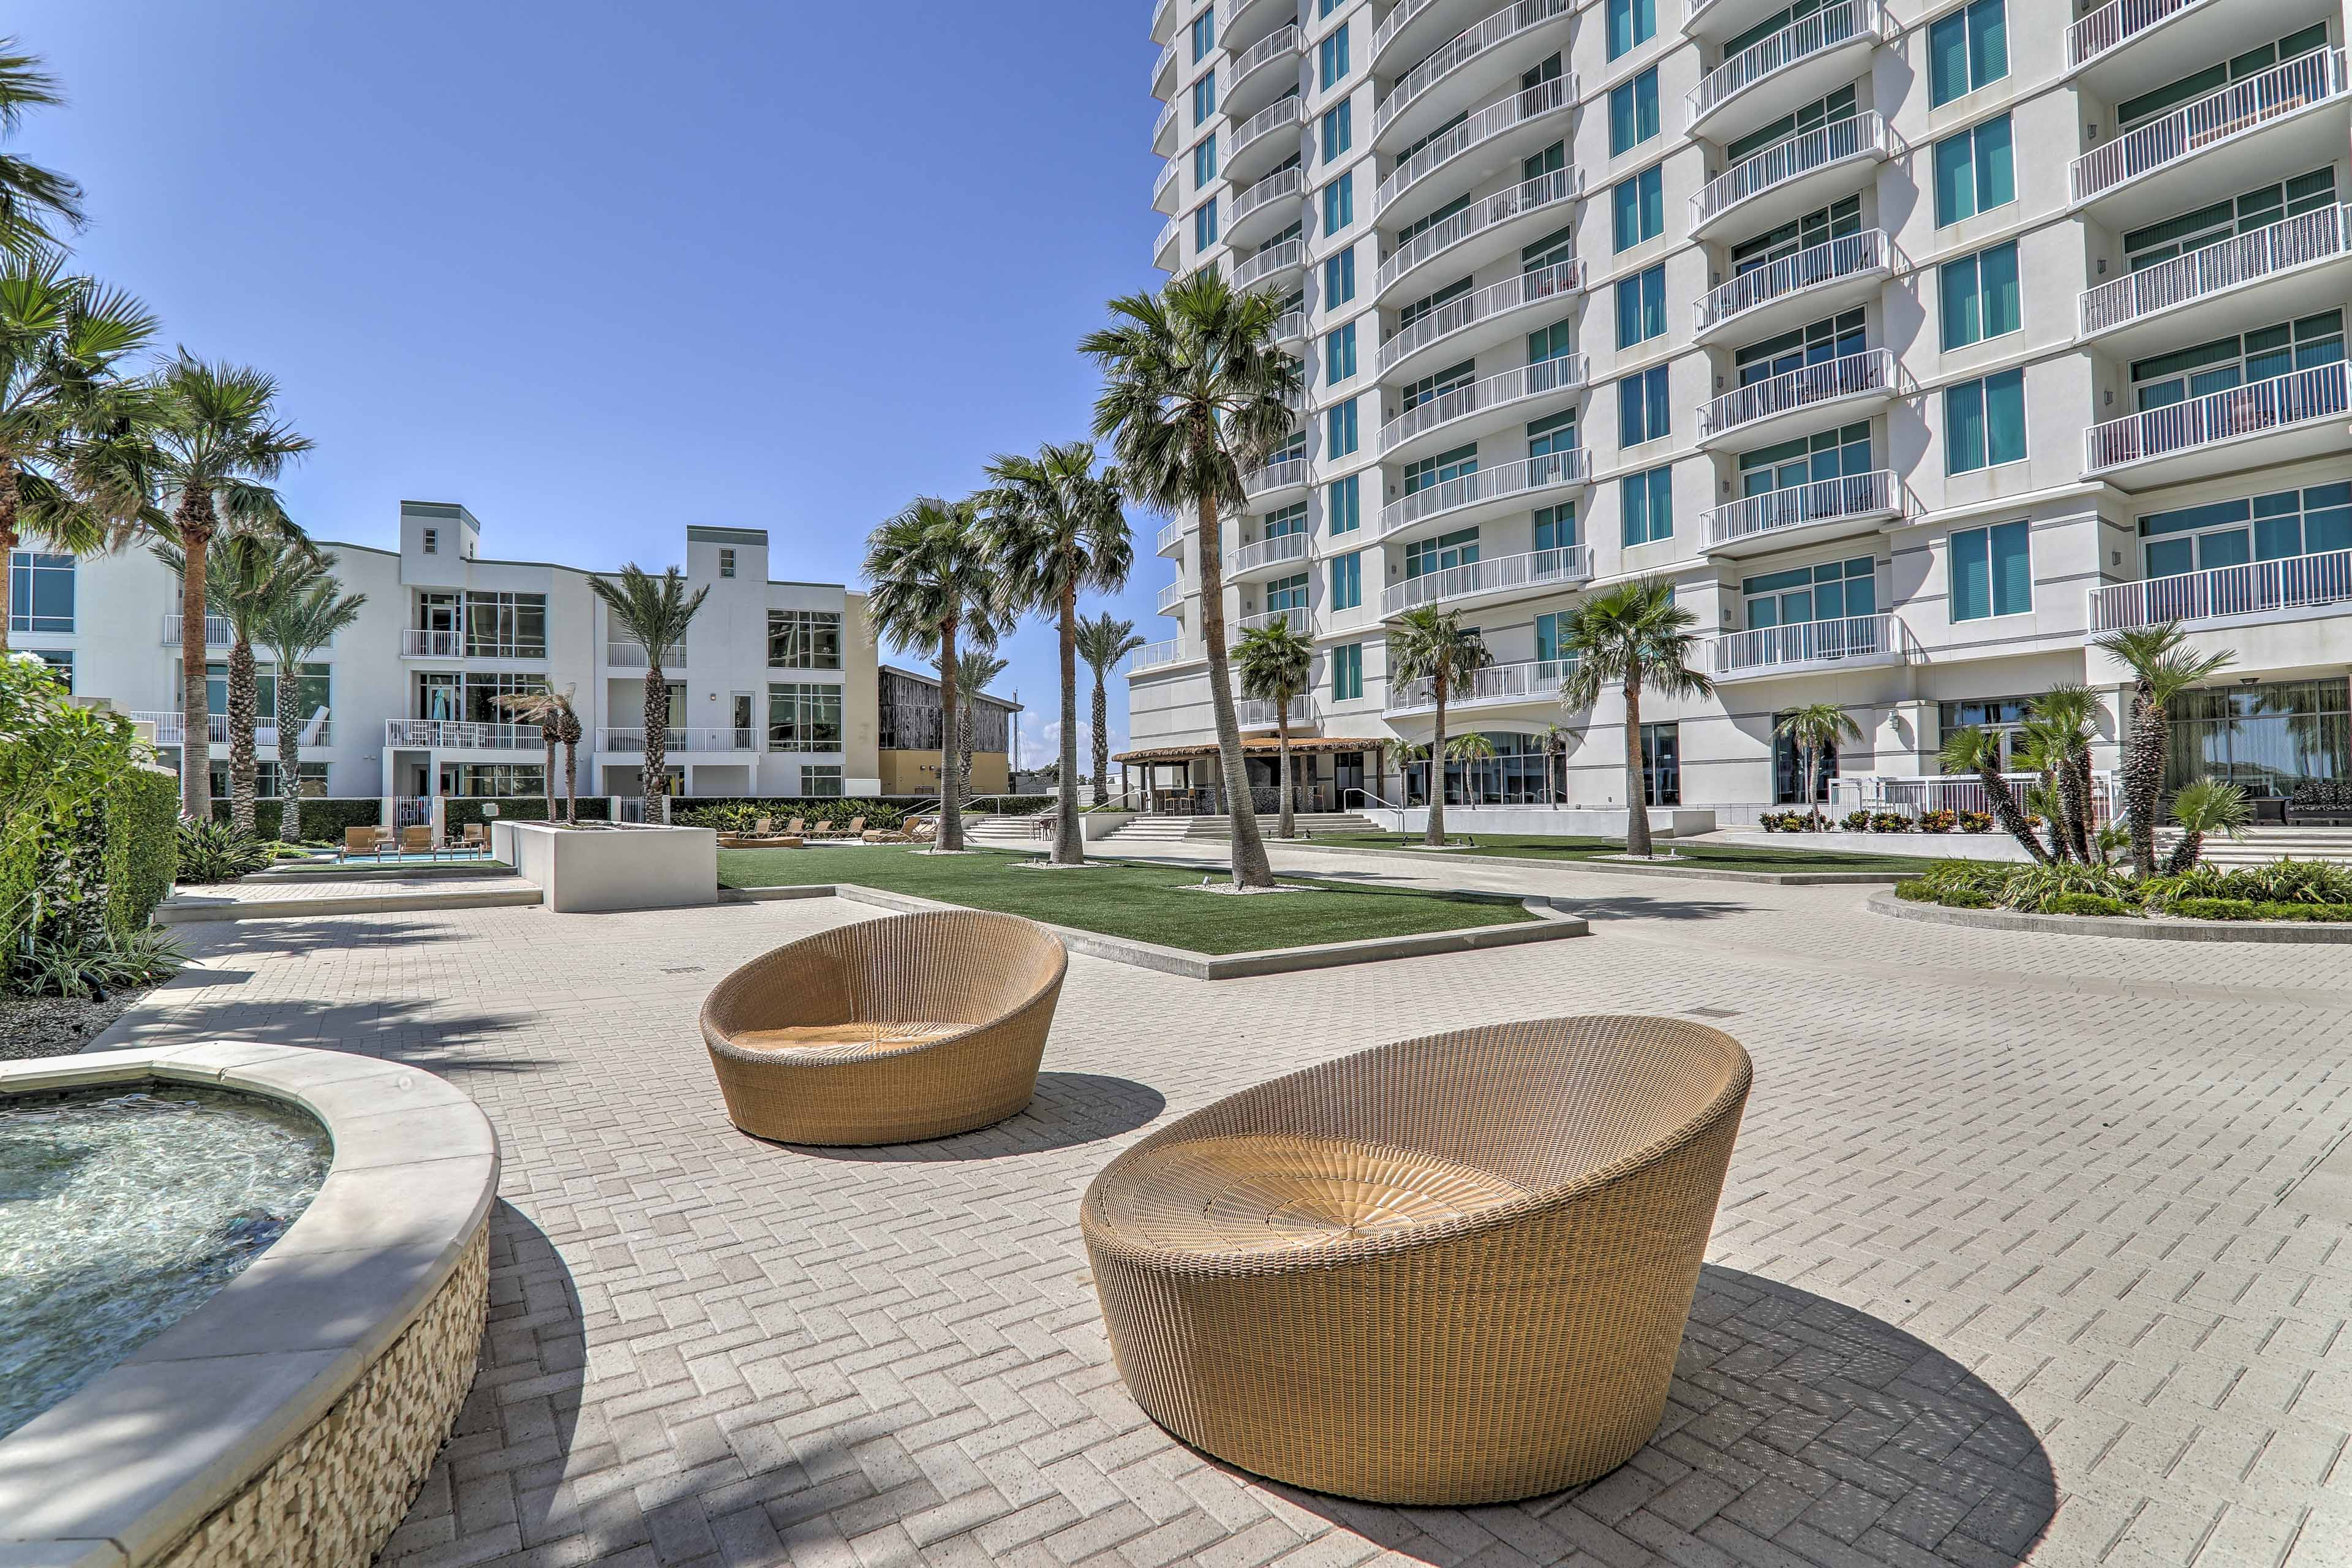 Step outside to find a beautiful plaza with chairs and water features.